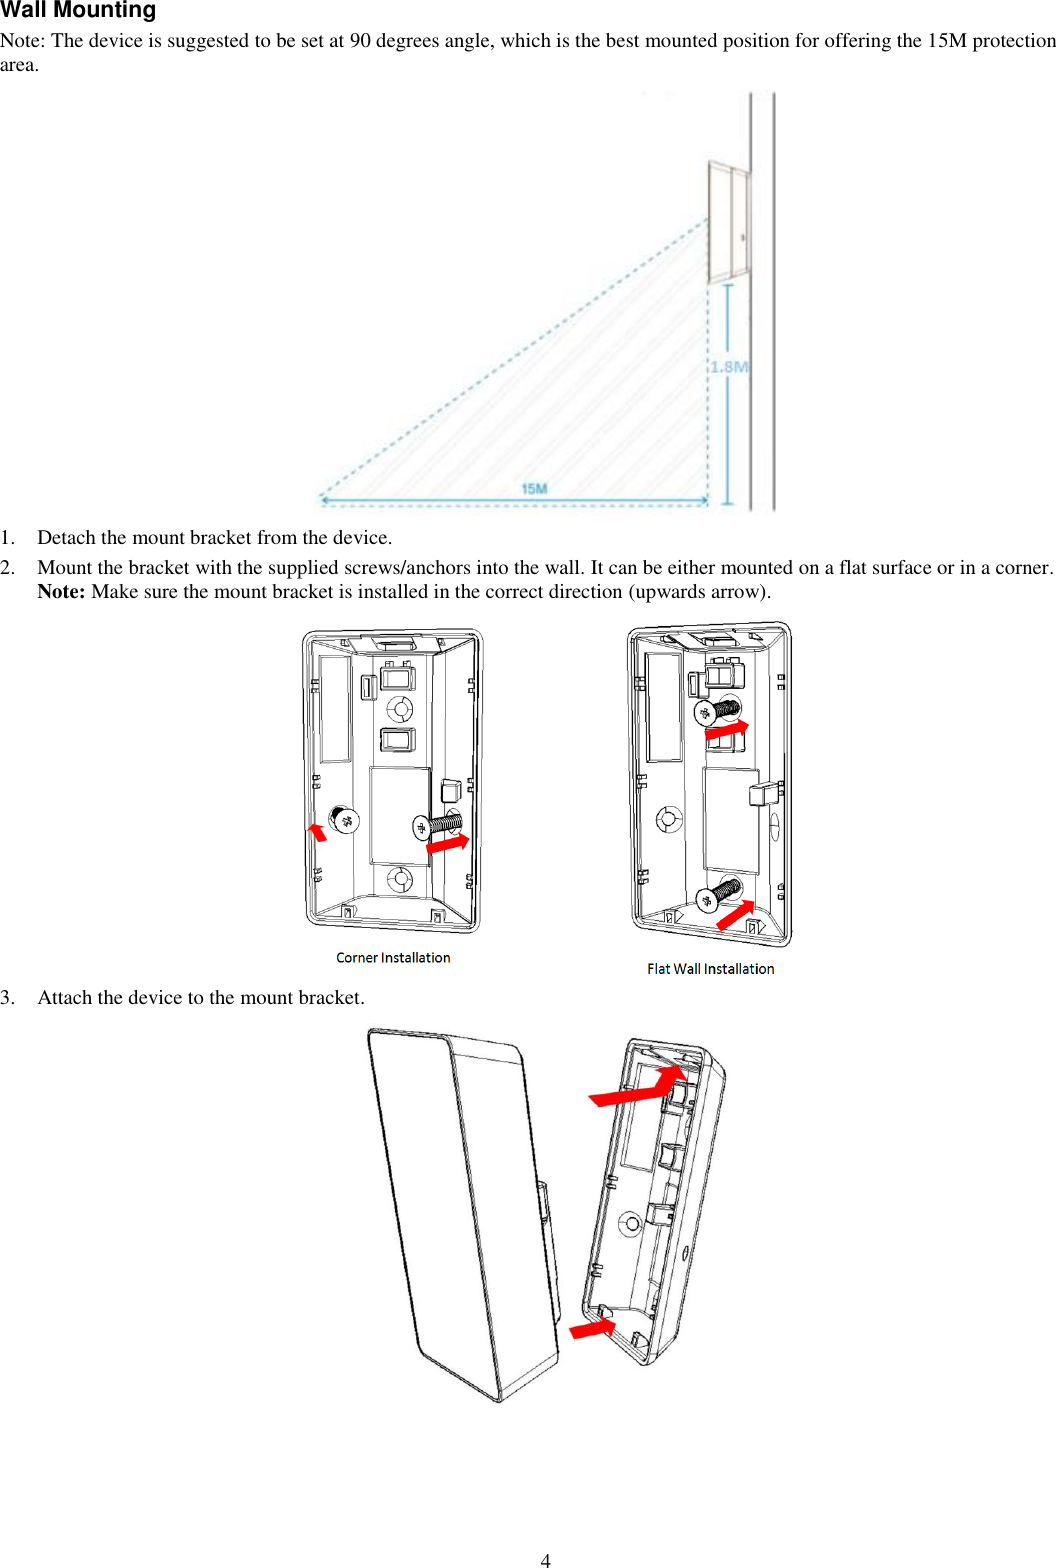 4 Wall Mounting Note: The device is suggested to be set at 90 degrees angle, which is the best mounted position for offering the 15M protection area.  1. Detach the mount bracket from the device. 2. Mount the bracket with the supplied screws/anchors into the wall. It can be either mounted on a flat surface or in a corner.  Note: Make sure the mount bracket is installed in the correct direction (upwards arrow).                          3. Attach the device to the mount bracket.